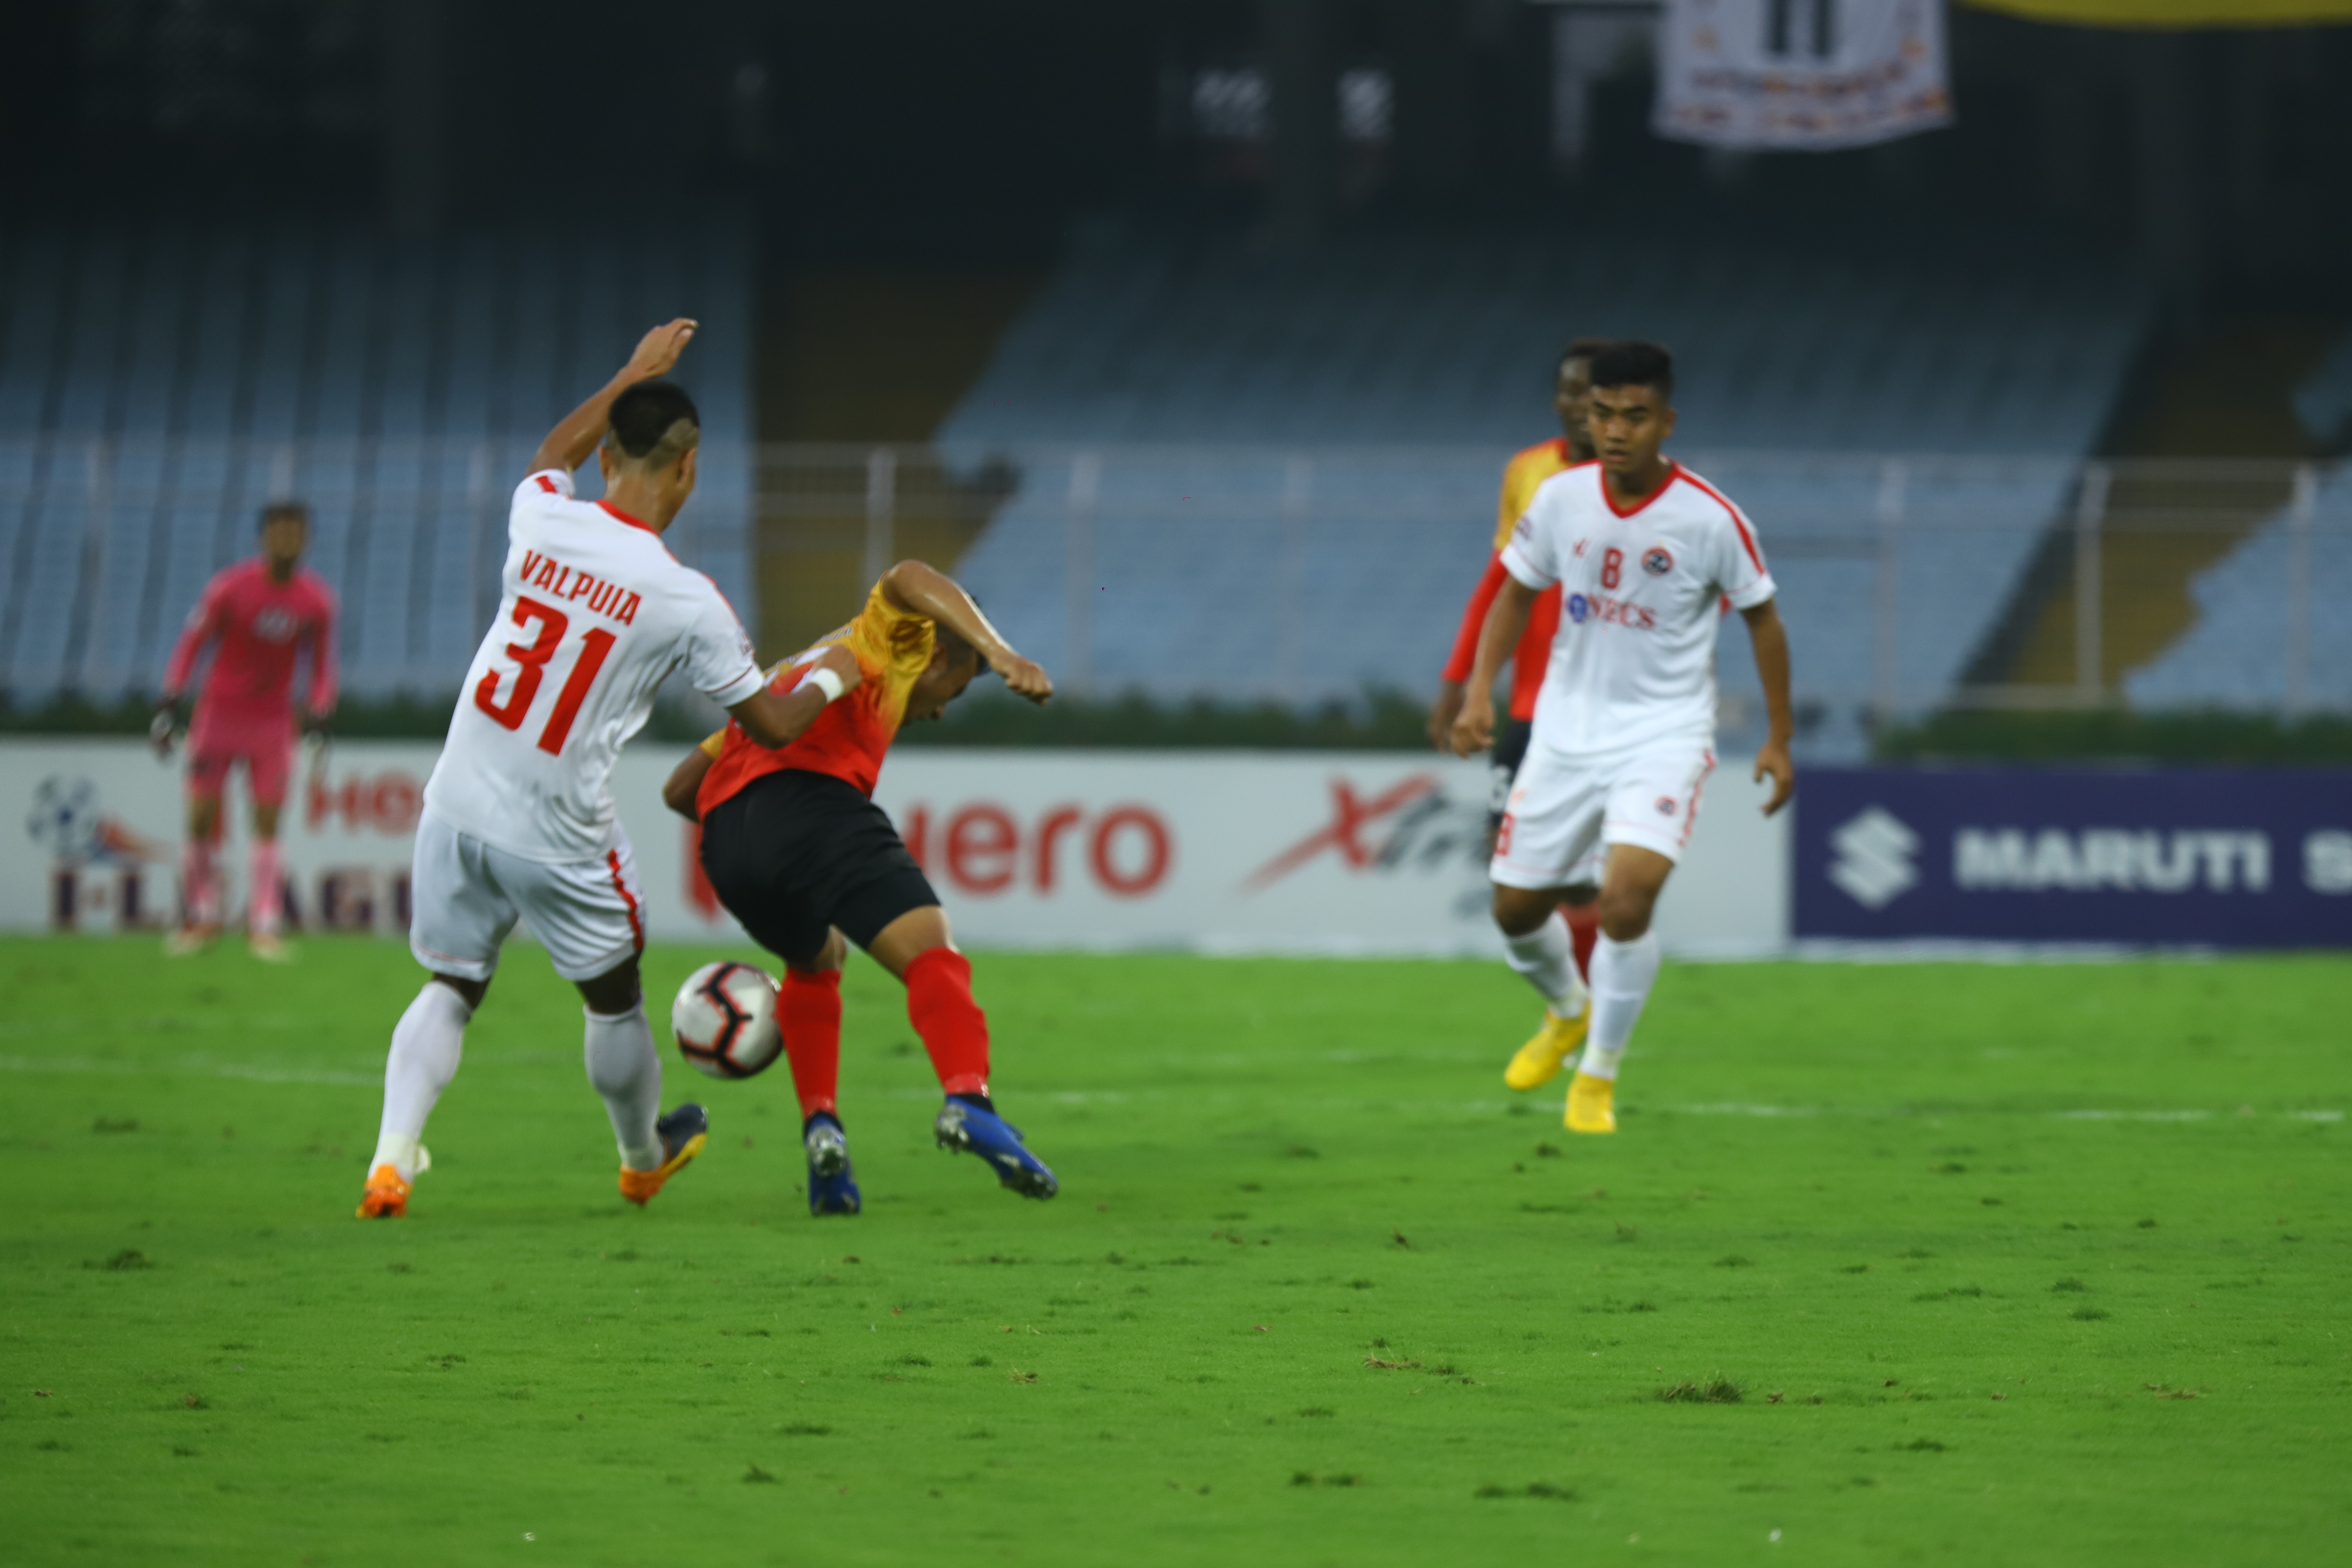 Aizawl FC and East Bengal players tussle for a ball in their I-League encounter (Image Credits- Goal.com)